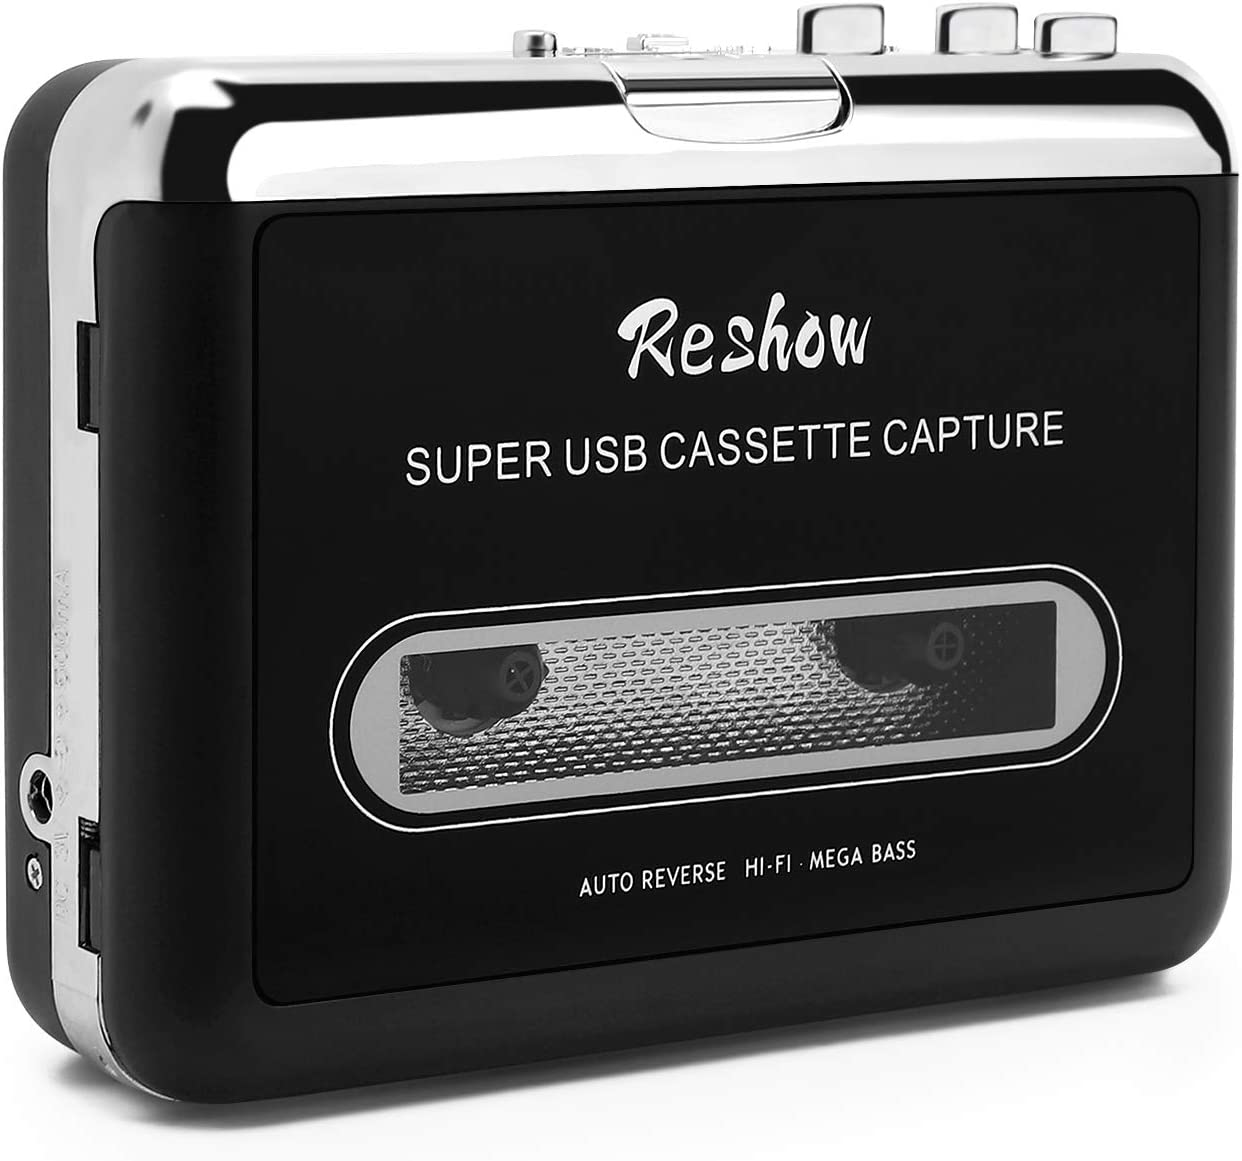 Reshow Cassette Player – Portable Tape Player Captures MP3 Audio Music via USB – Compatible with Laptops and Personal Computers – Convert Walkman Tape Cassettes to iPod Format (Black)